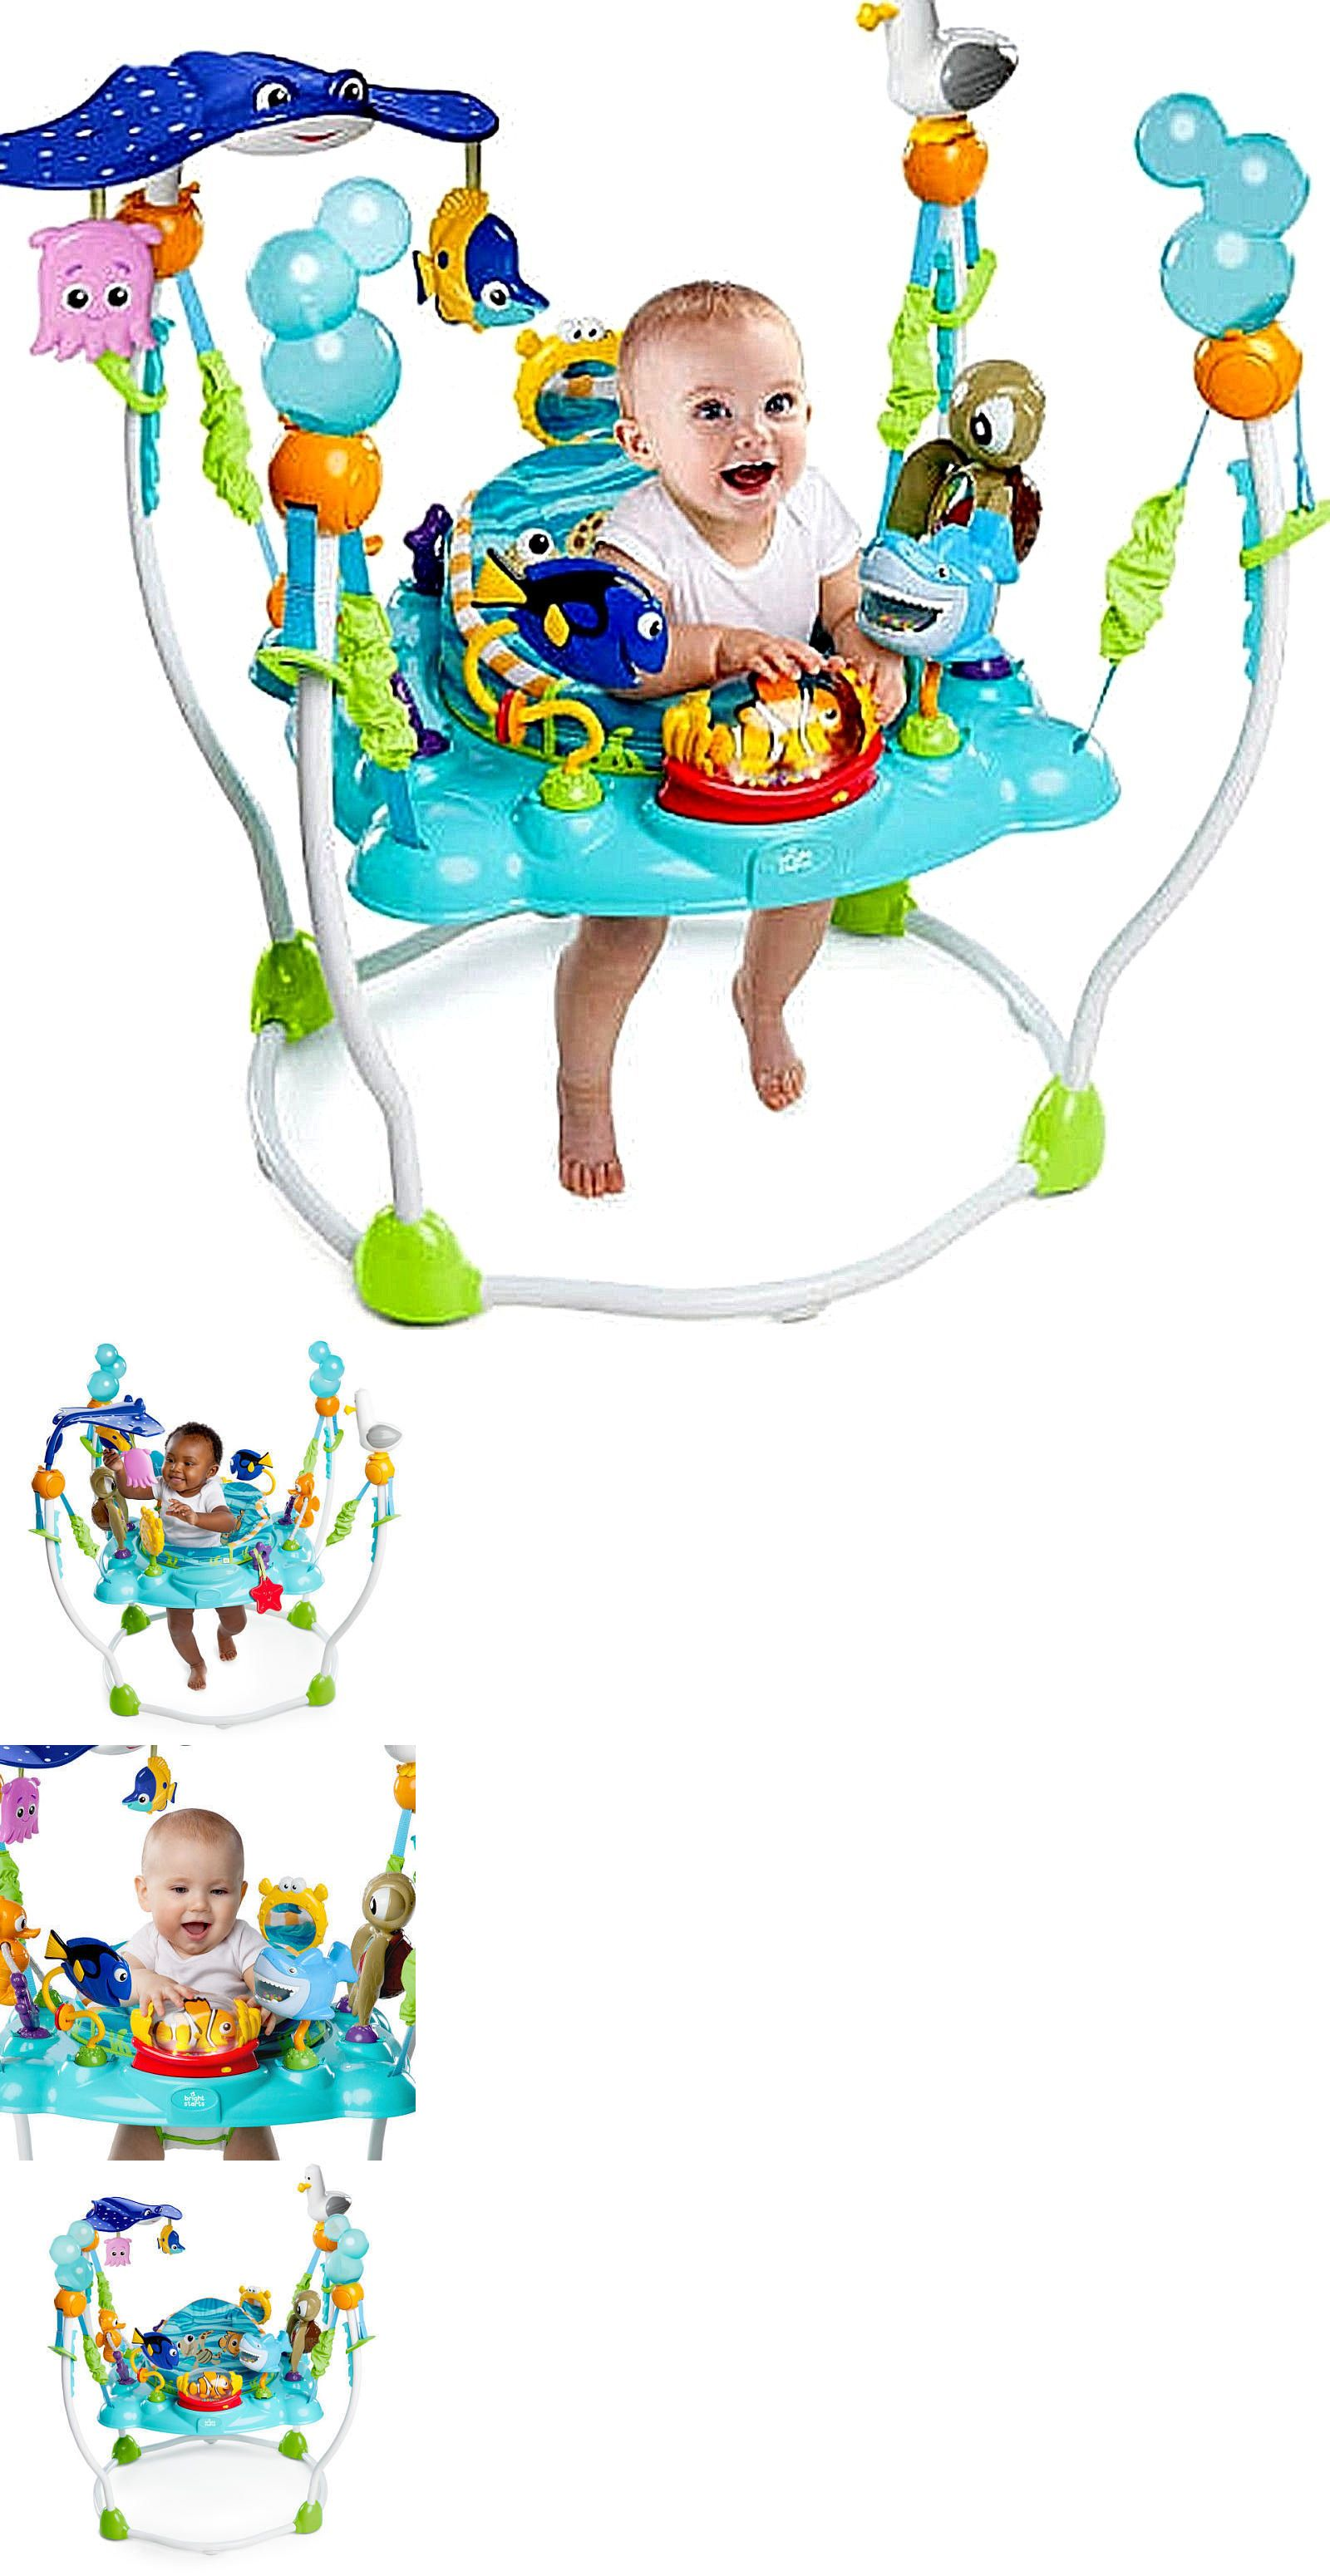 c4ae8ecfdb4e Baby Jumper Disney Finding Nemo Dory Sea activities seat Bouncer ...